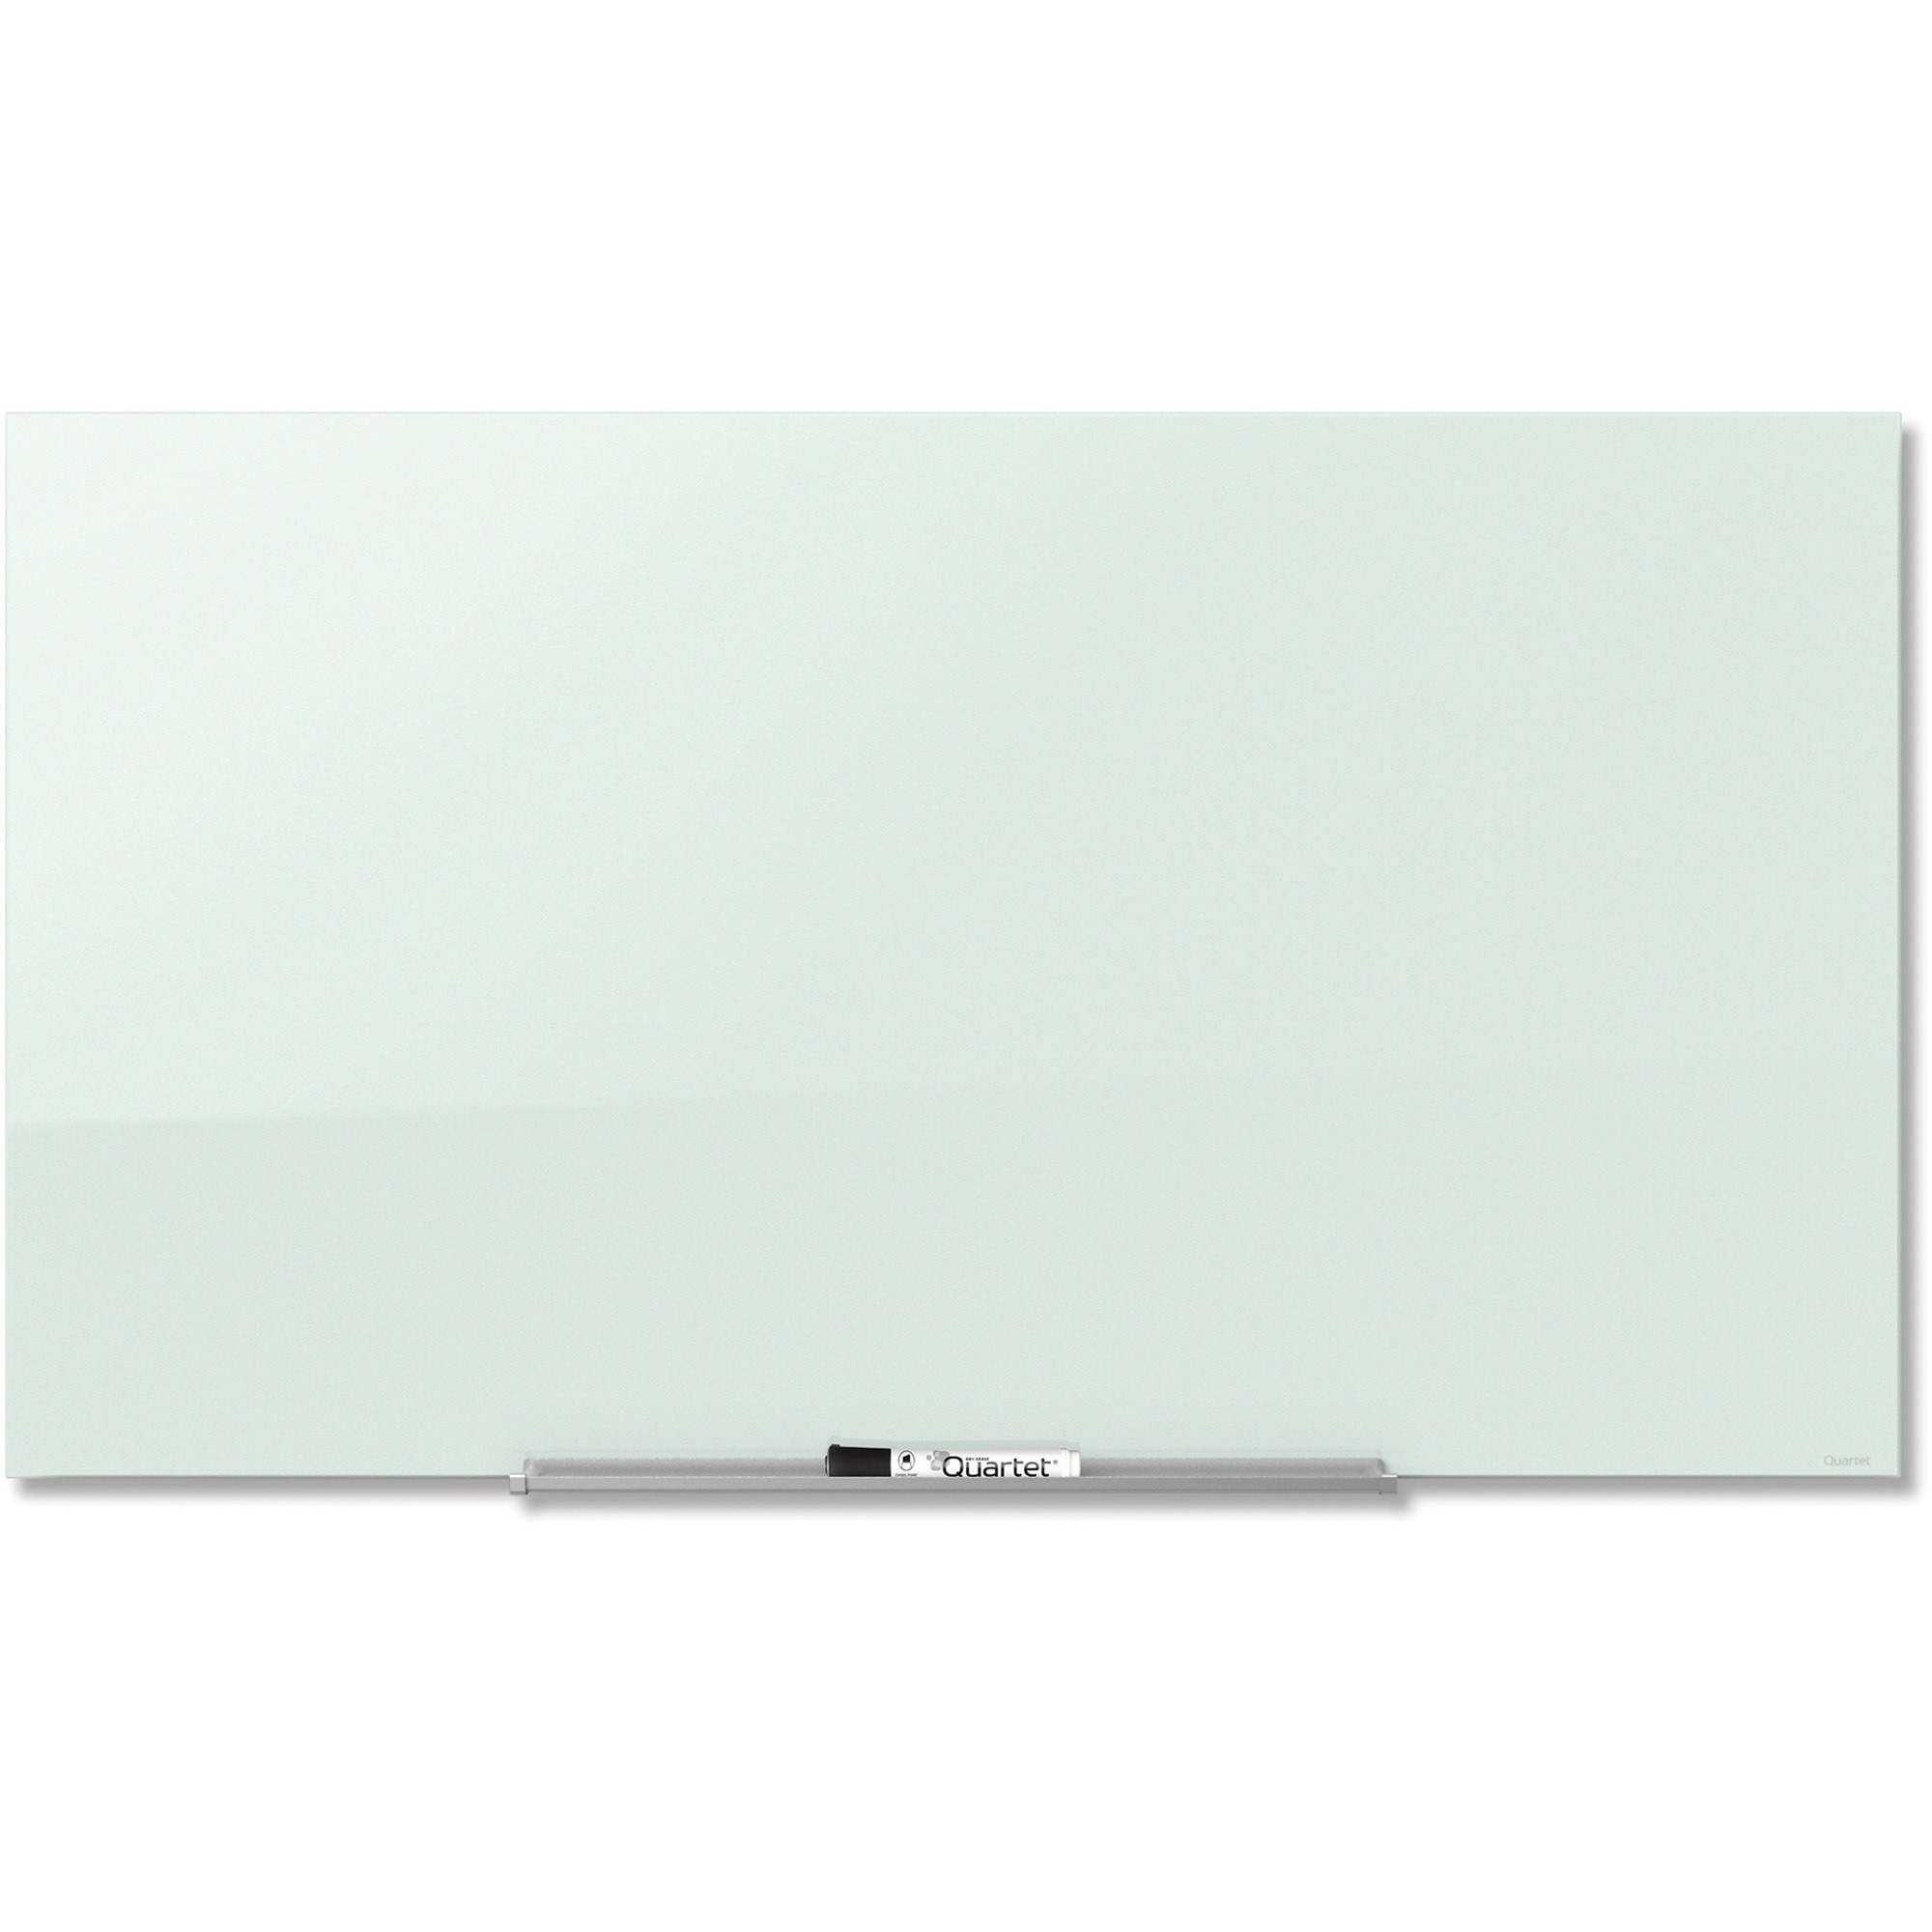 Acco Brands Corporation Quartet® Invisamount Magnetic Glass Dry-erase Board - 39 (3.3 Ft) Width X 22 (1.8 Ft) Height - White Tempered Glass Surface - Horizontal - Assembly Required - 1 Each